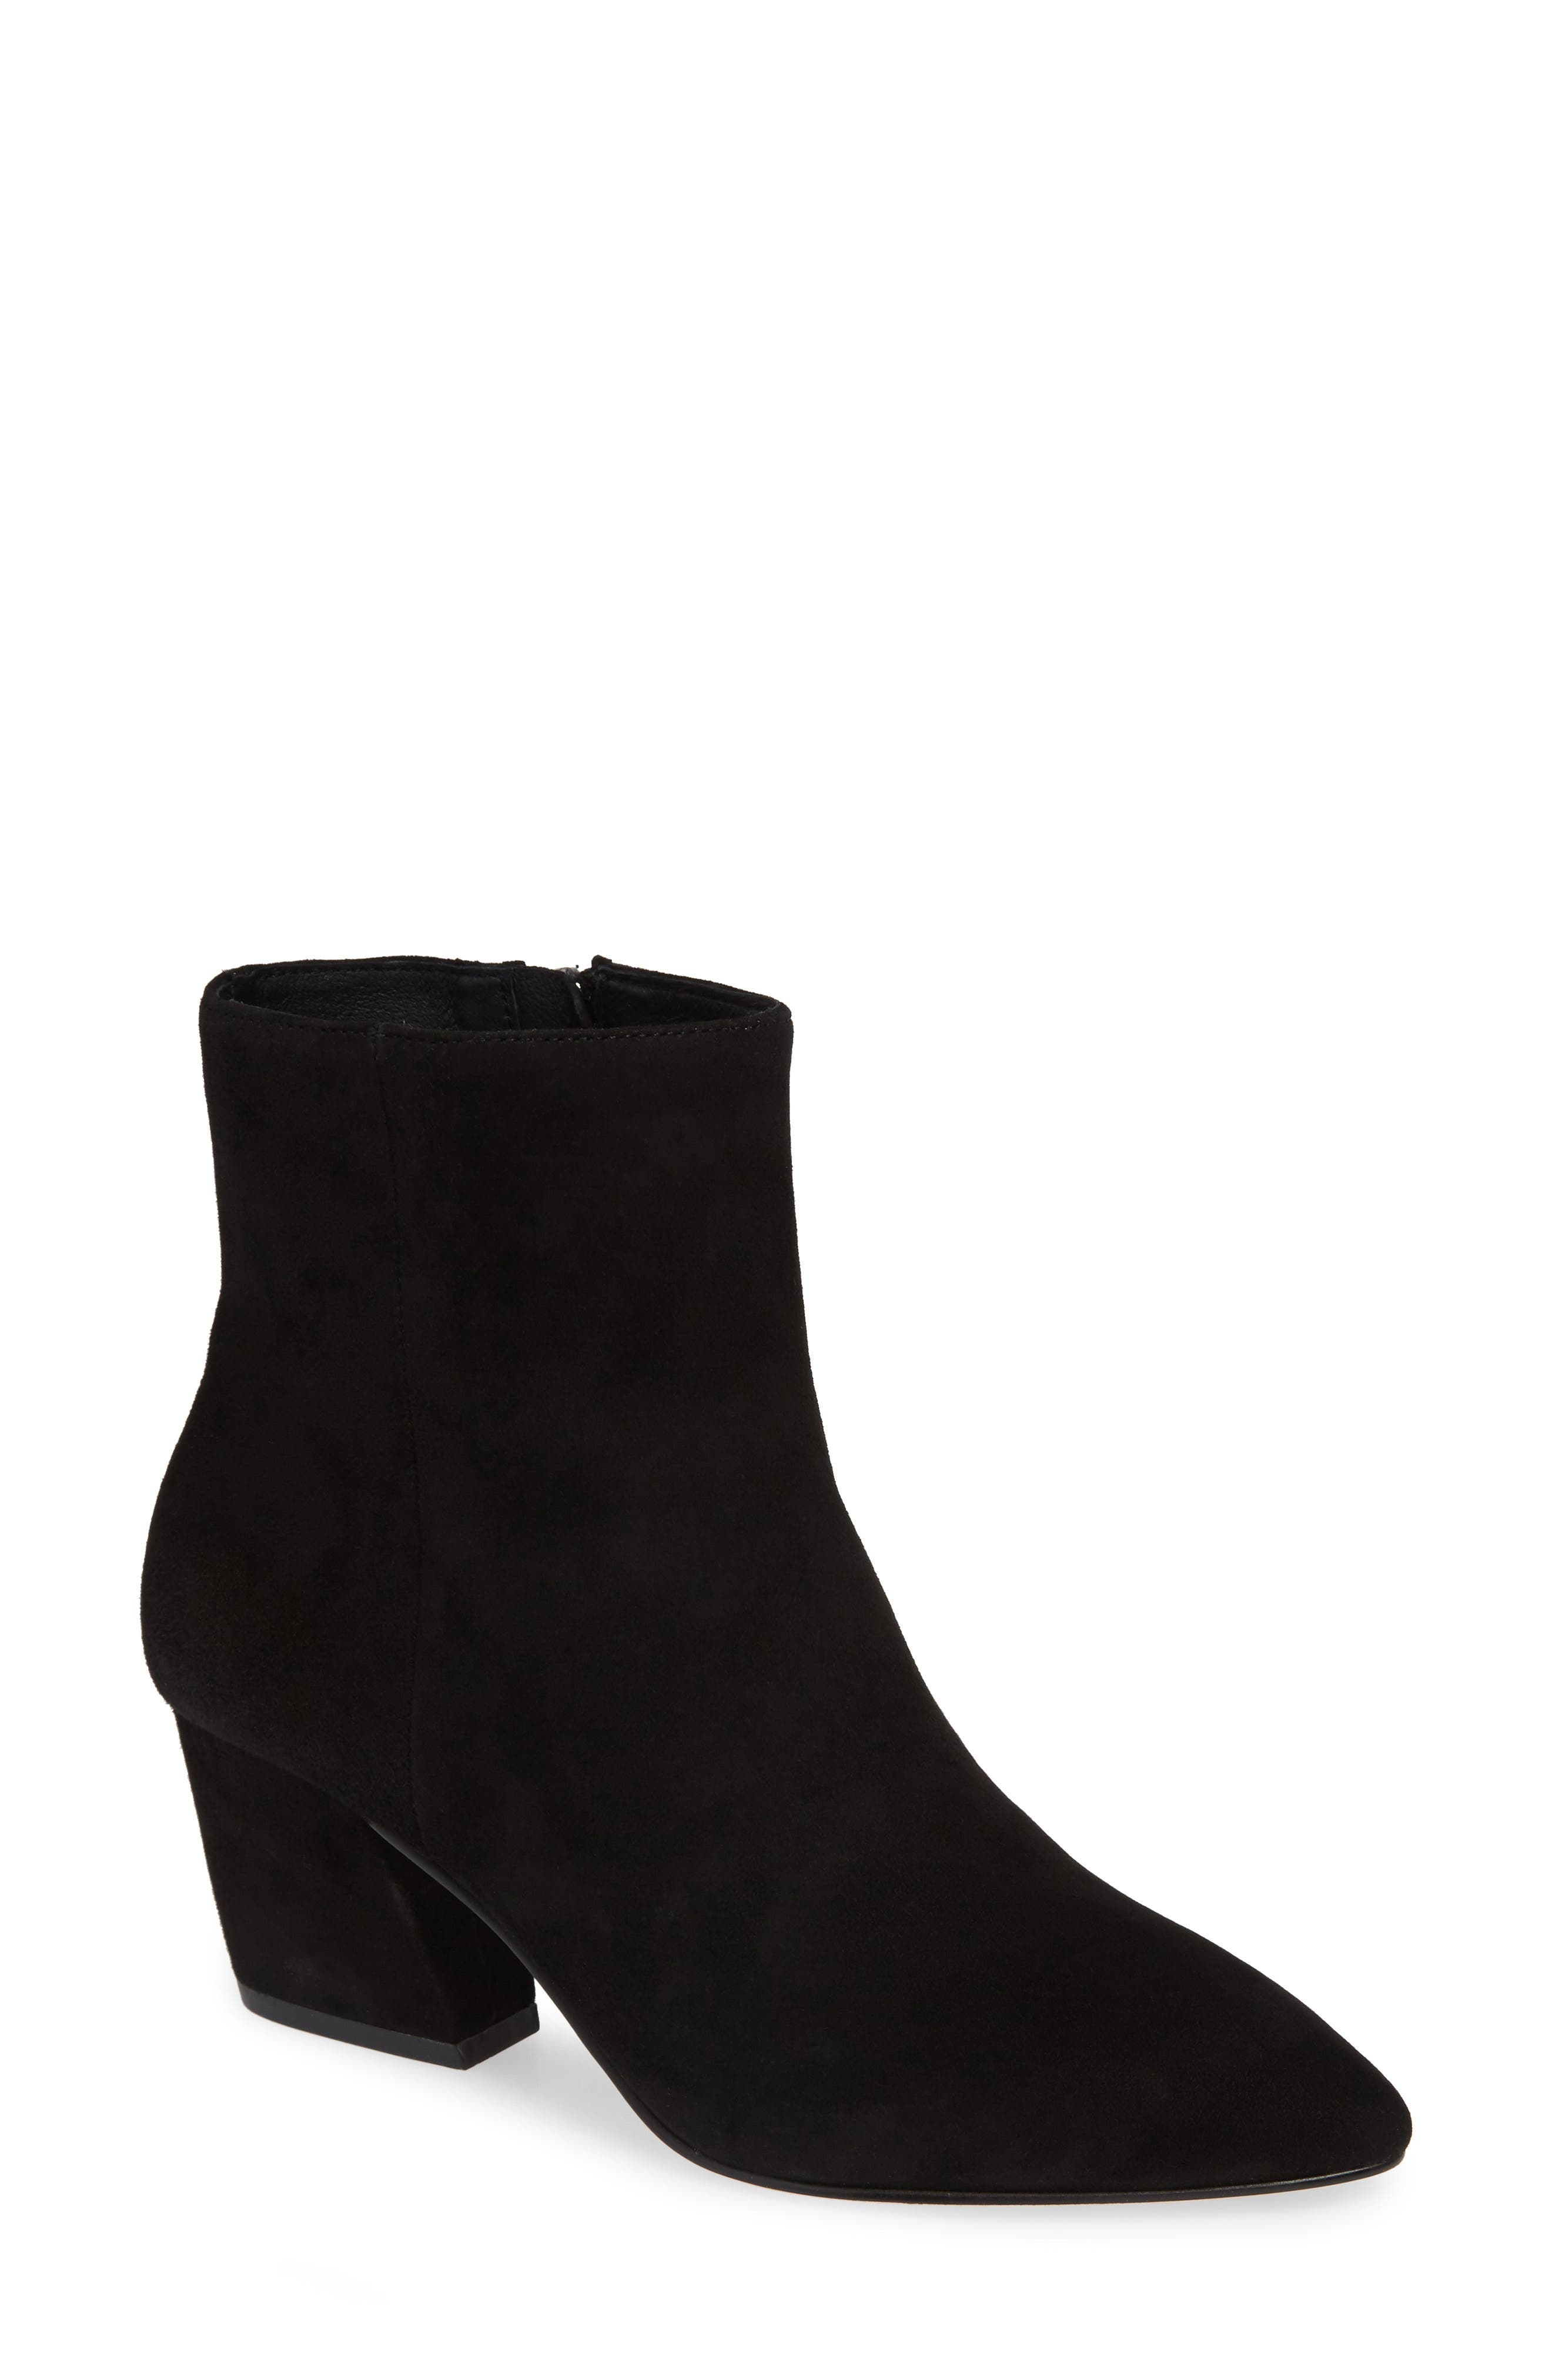 Sasha Bootie,                         Main,                         color, BLACK SUEDE